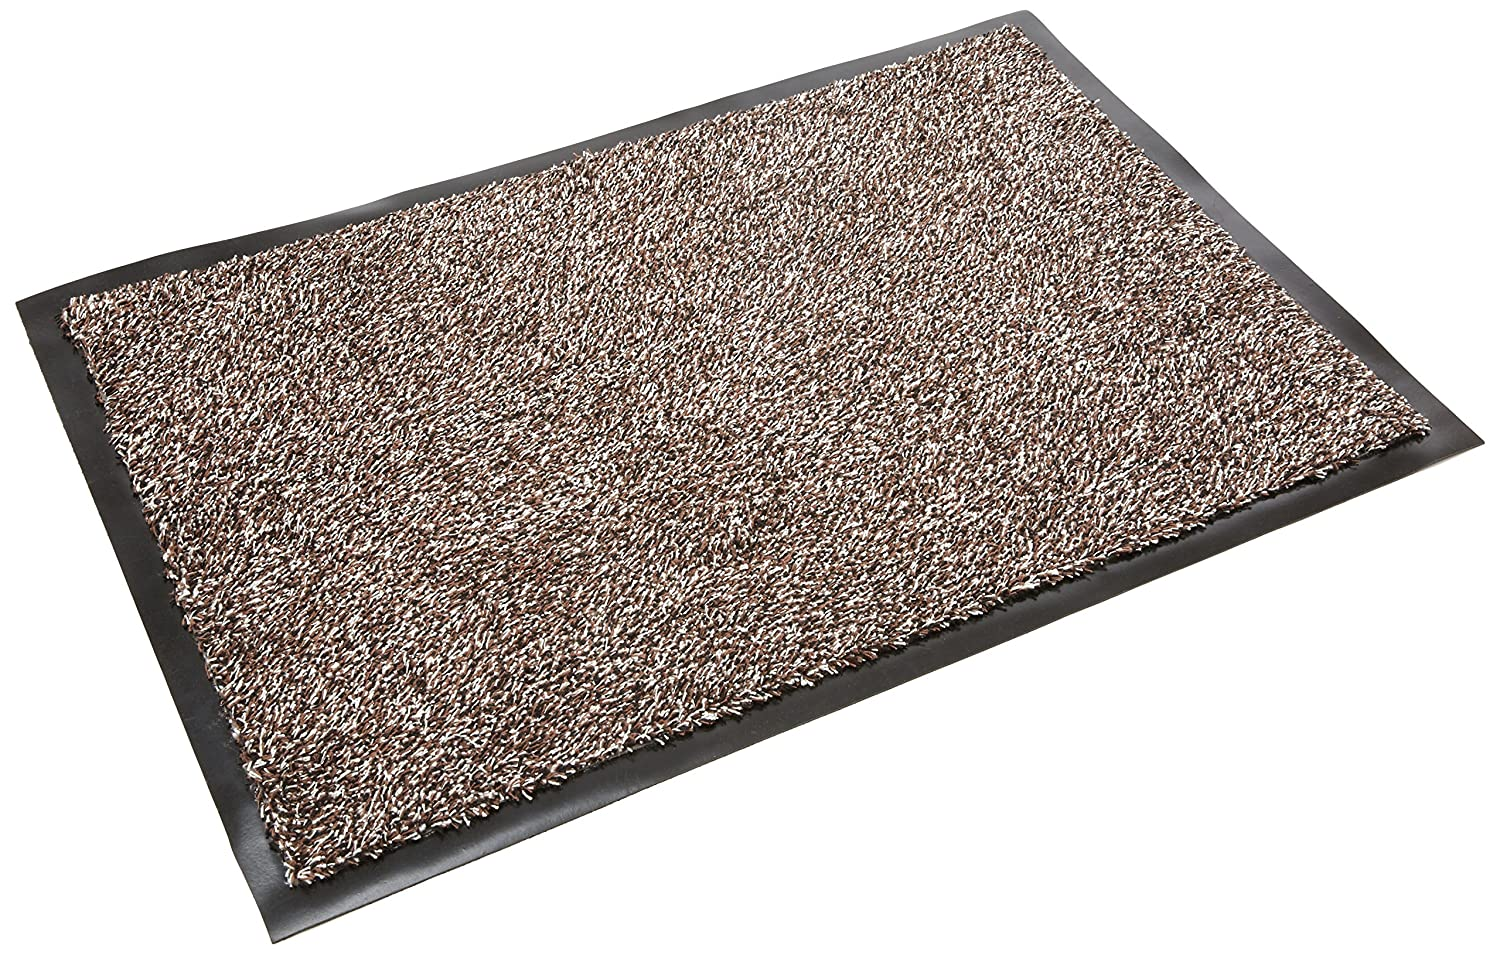 Addis Mega Door Mat Highly Absorbent Cotton Non slip PP Mix machine Washable - Large 75 x 50 cm Brown Speck, Brown Fleck 517498